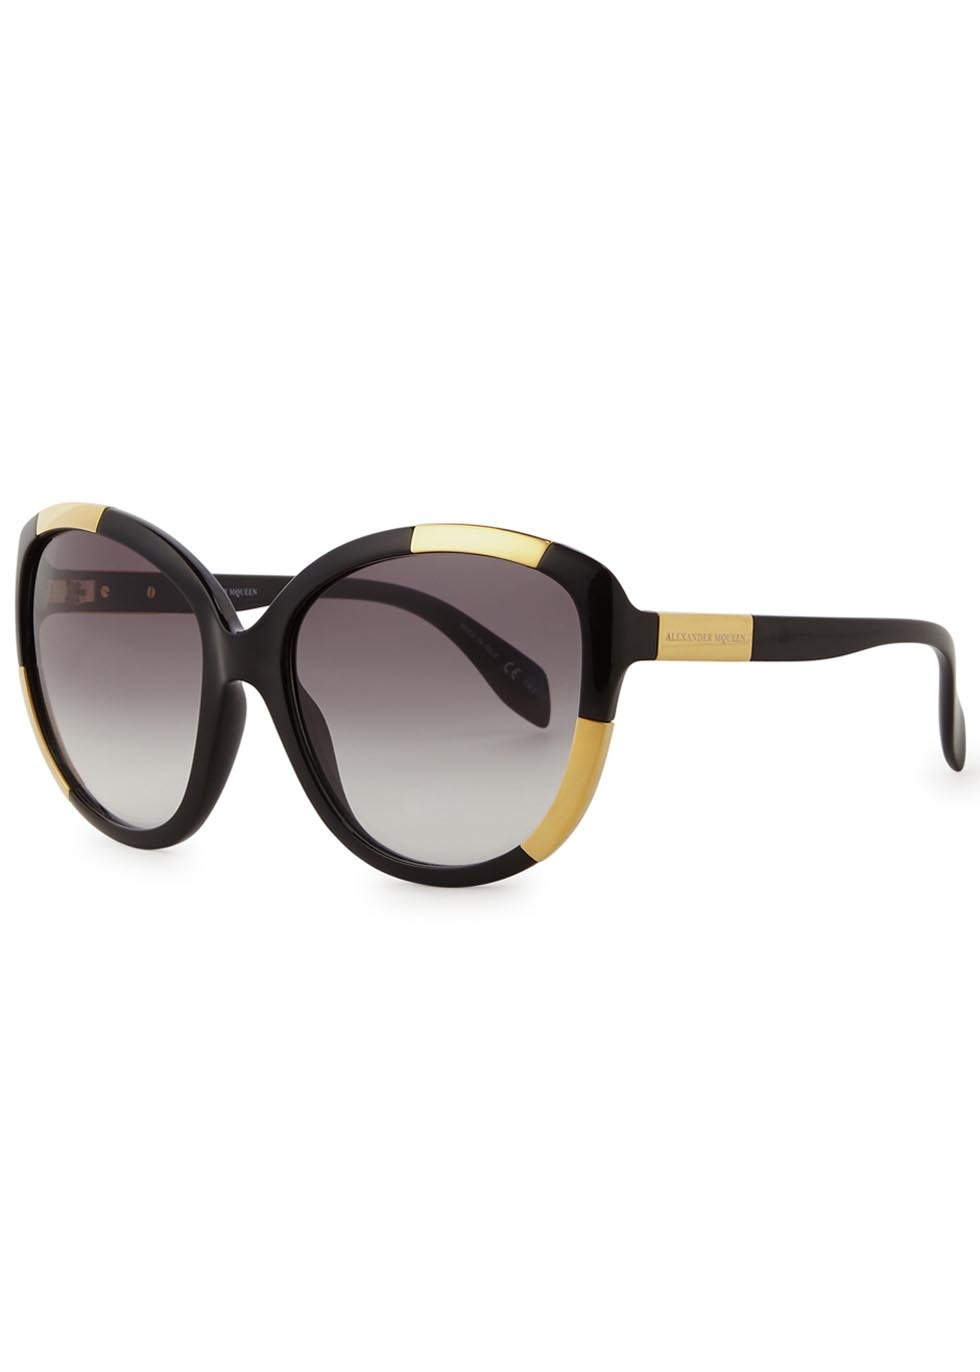 Black Oversized Sunglasses - predominant colour: black; occasions: casual, holiday; style: square; size: large; material: plastic/rubber; pattern: tortoiseshell; finish: plain; season: s/s 2016; wardrobe: basic